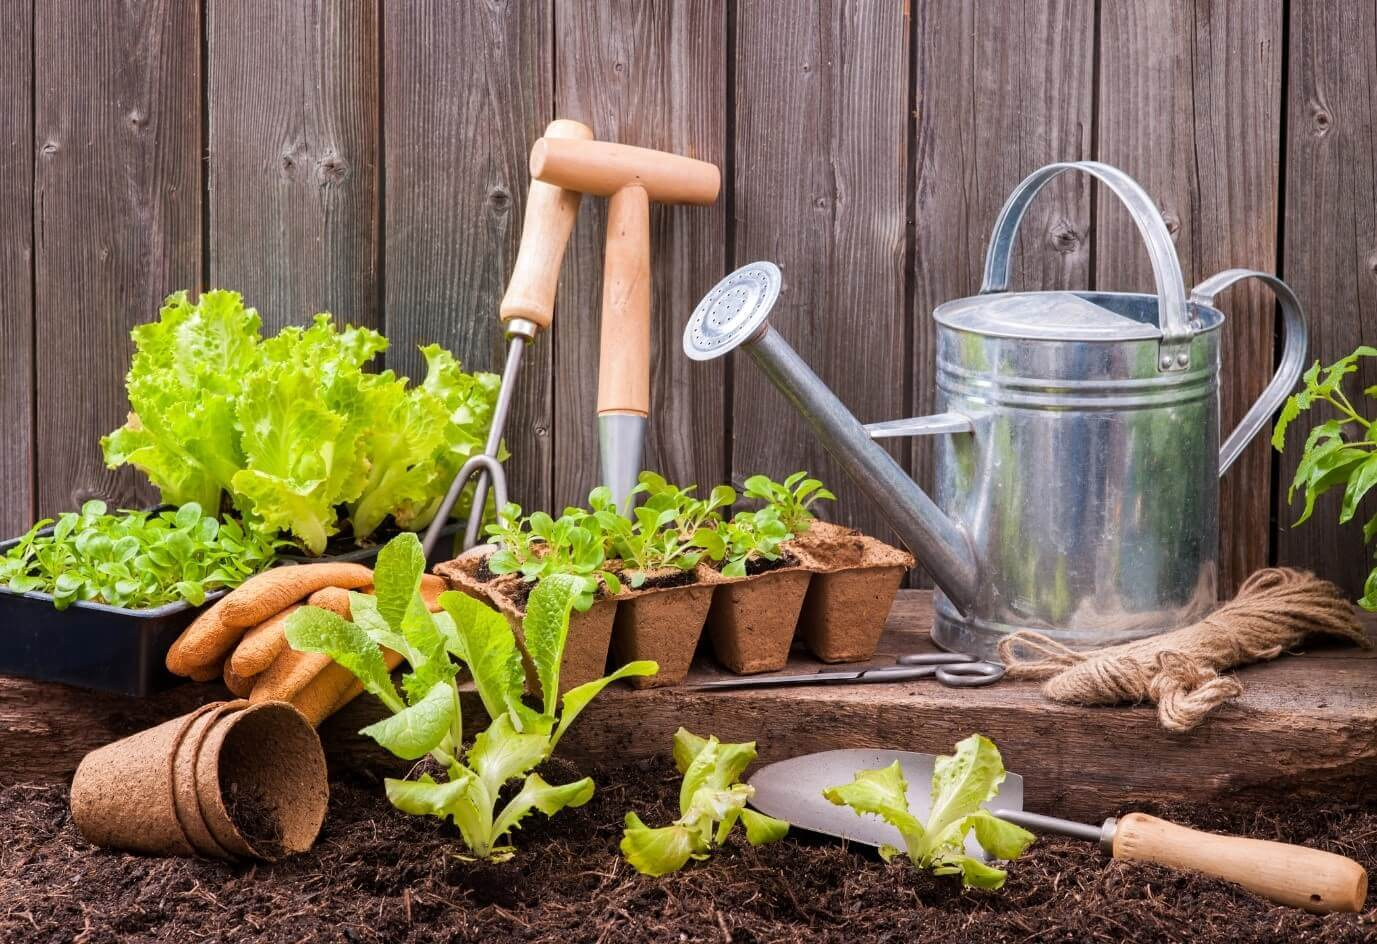 Gardening To Help Relax Your Mind During Covid